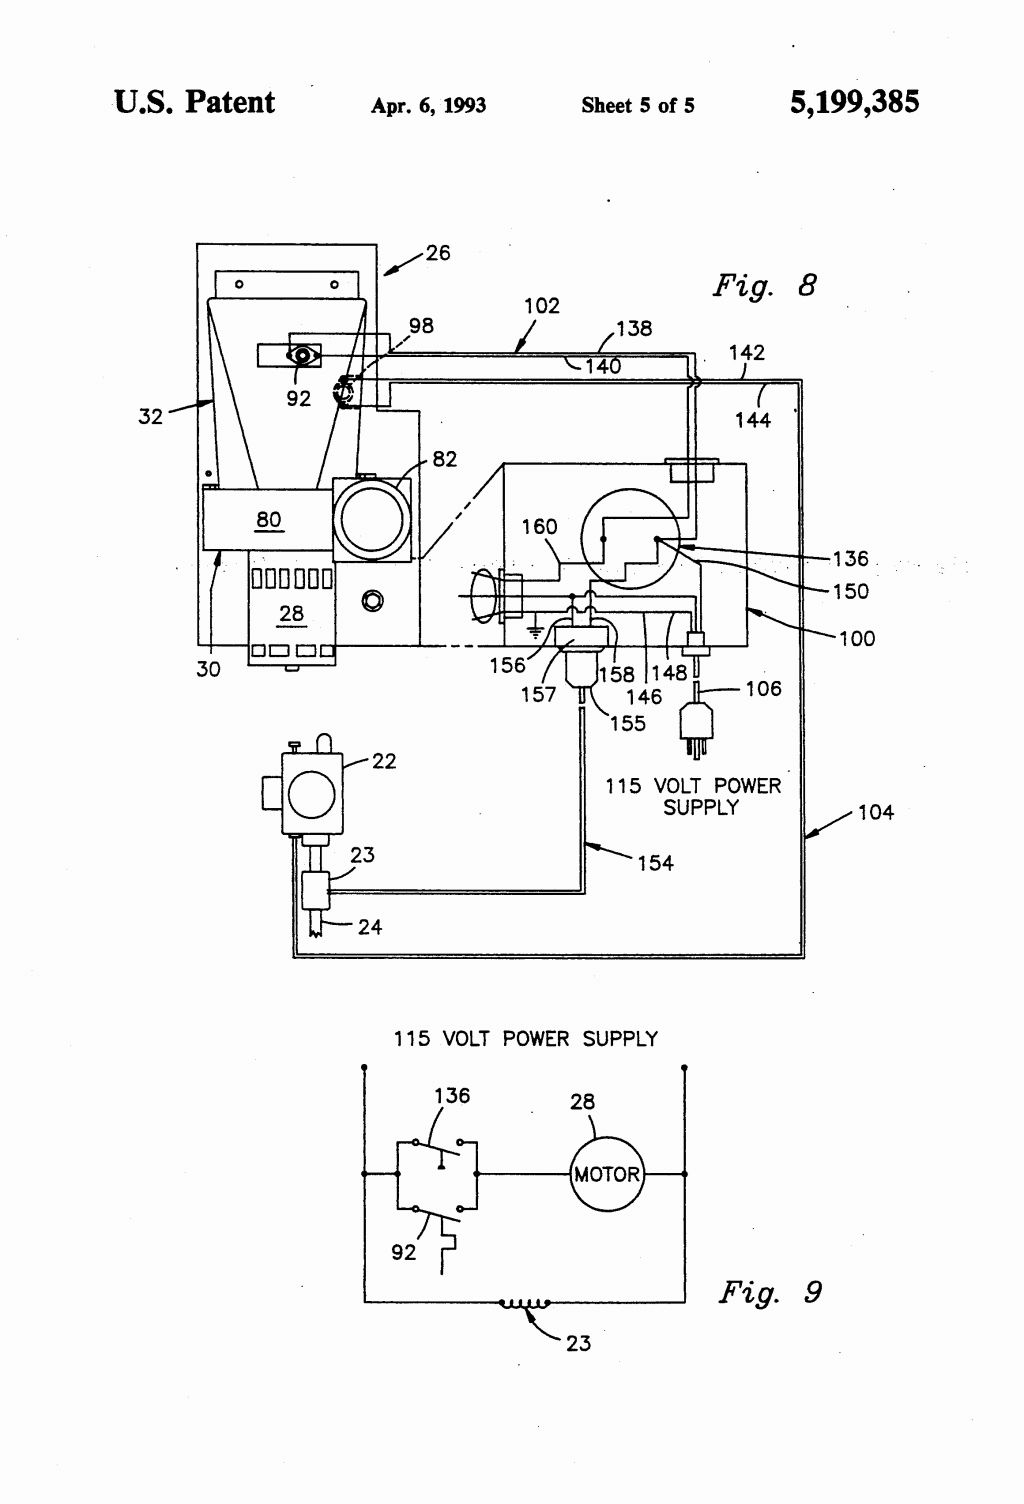 modine heater wiring diagram Download-Reznor Wiring Diagram Fresh Modine Wiring Diagram Pa75ab New Heater Graceful s Pa105 5-d